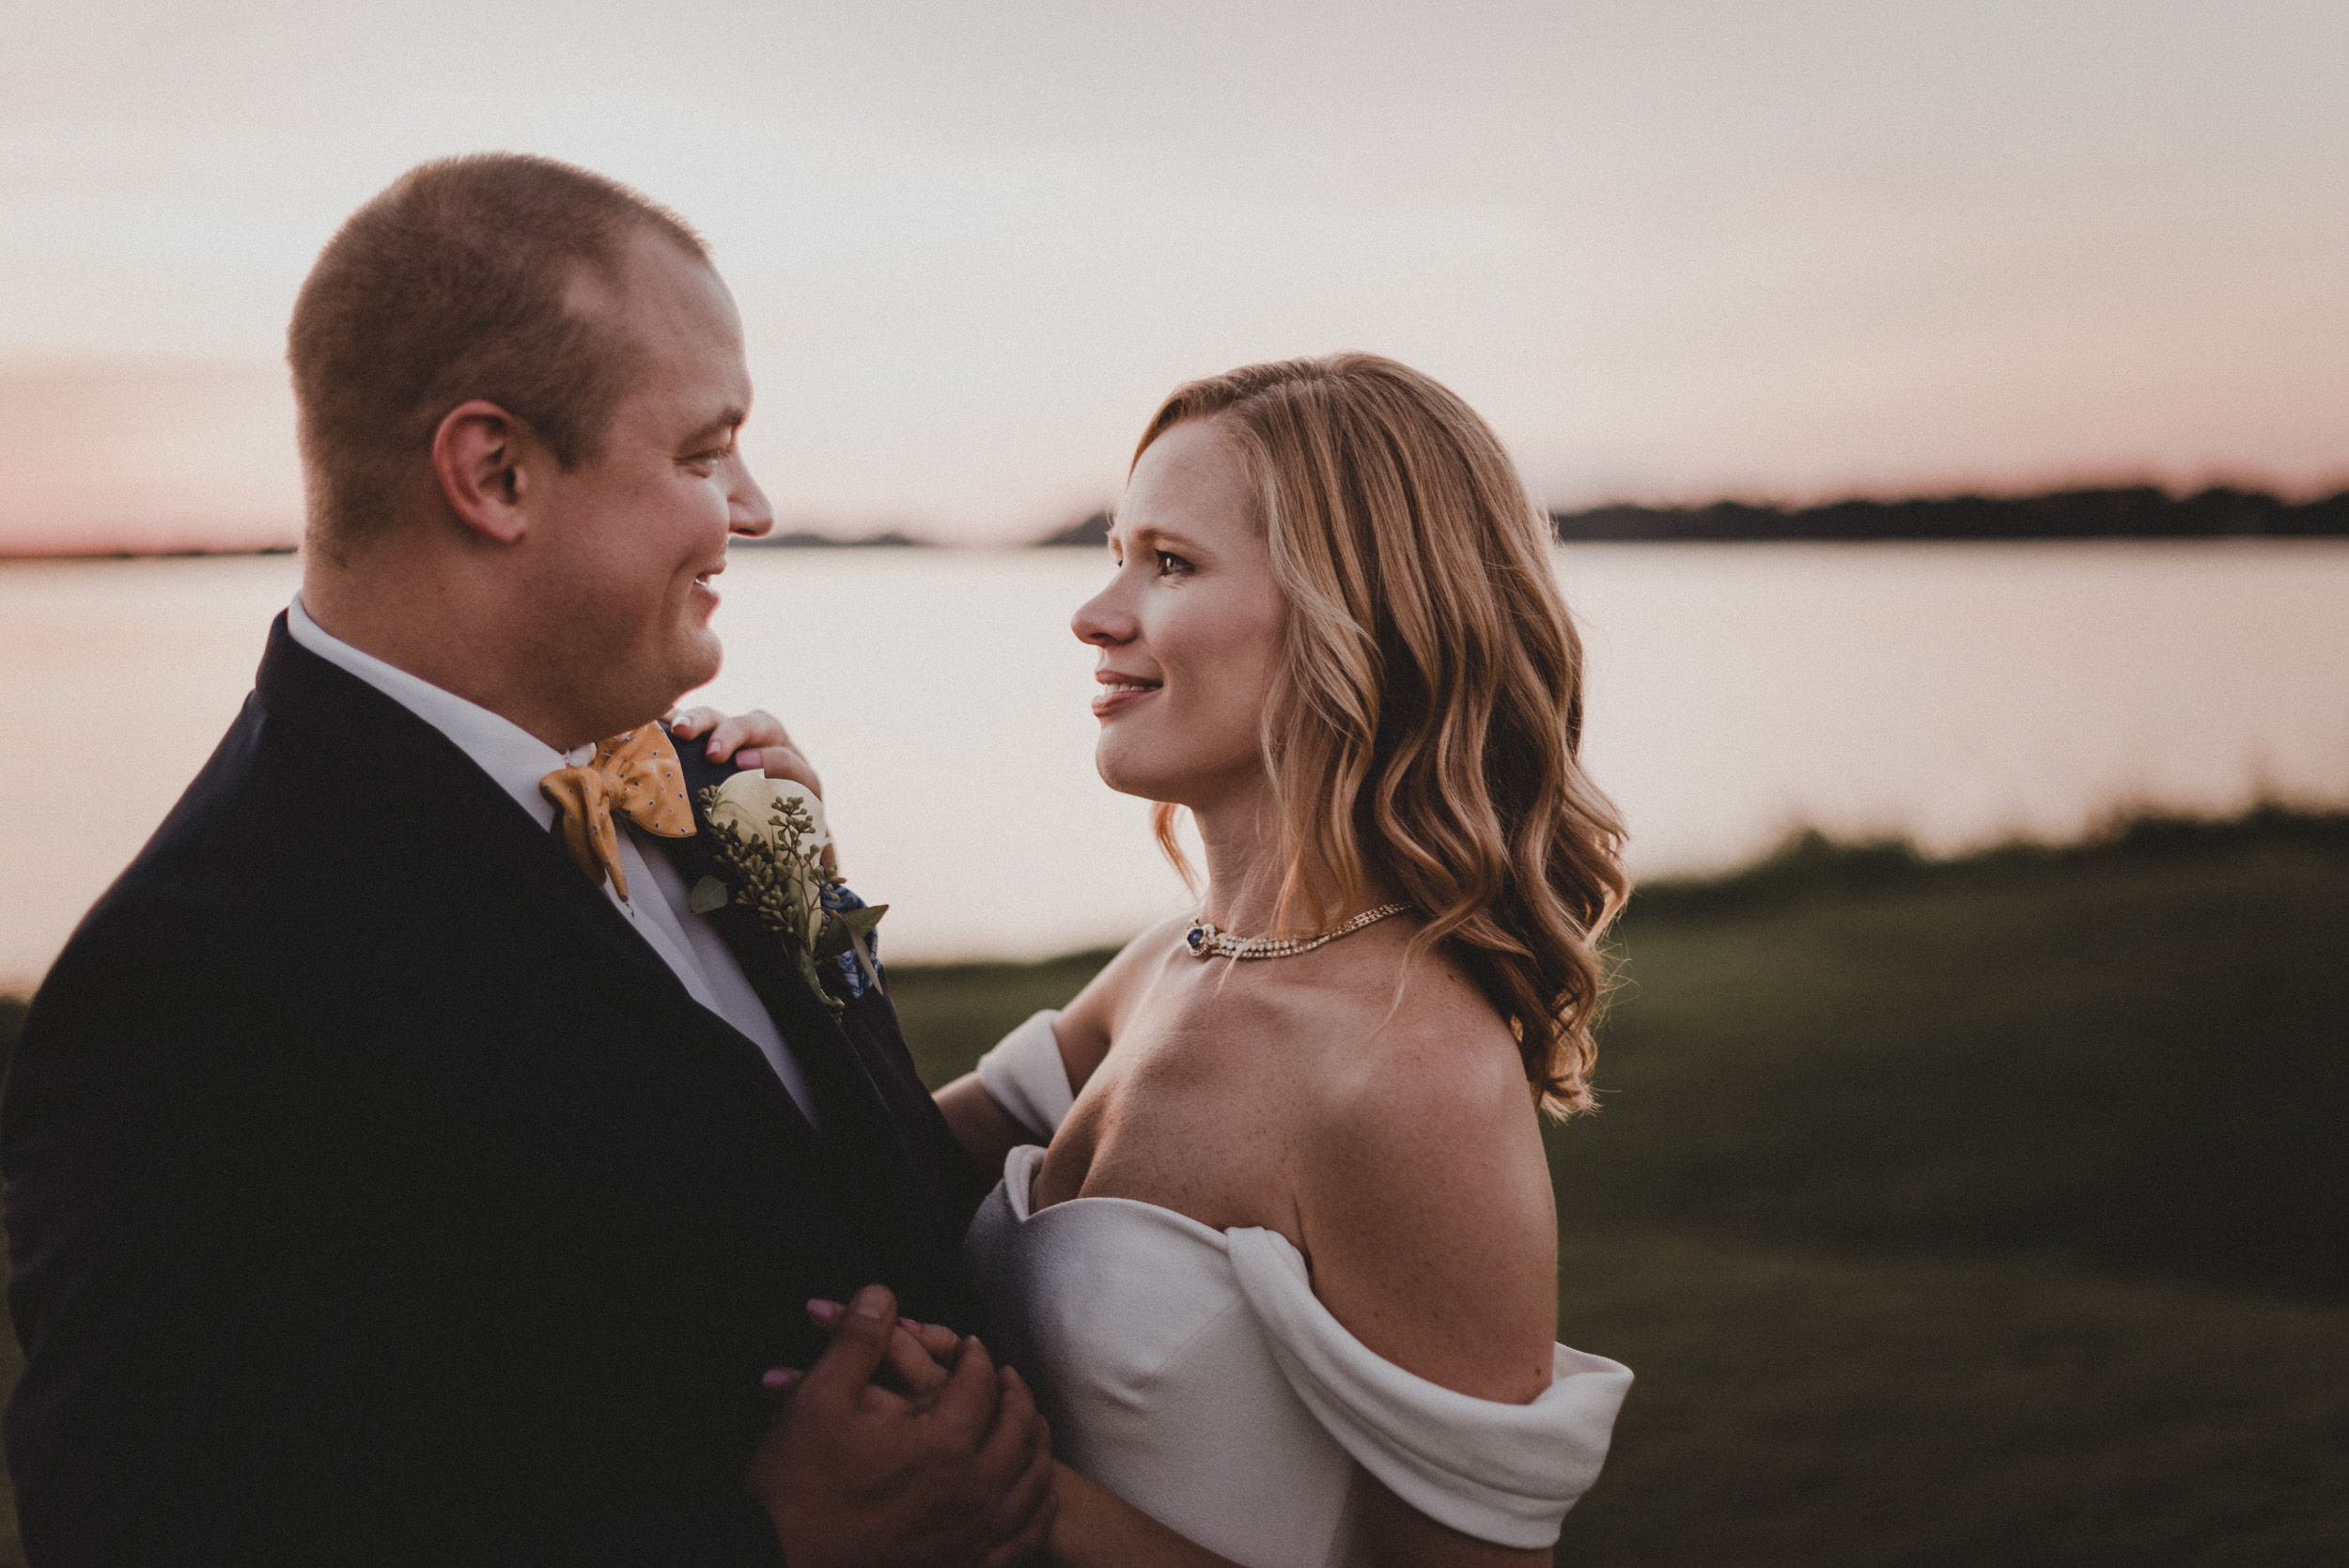 Wedding at Two Rivers Country Club in Williamsburg, VA